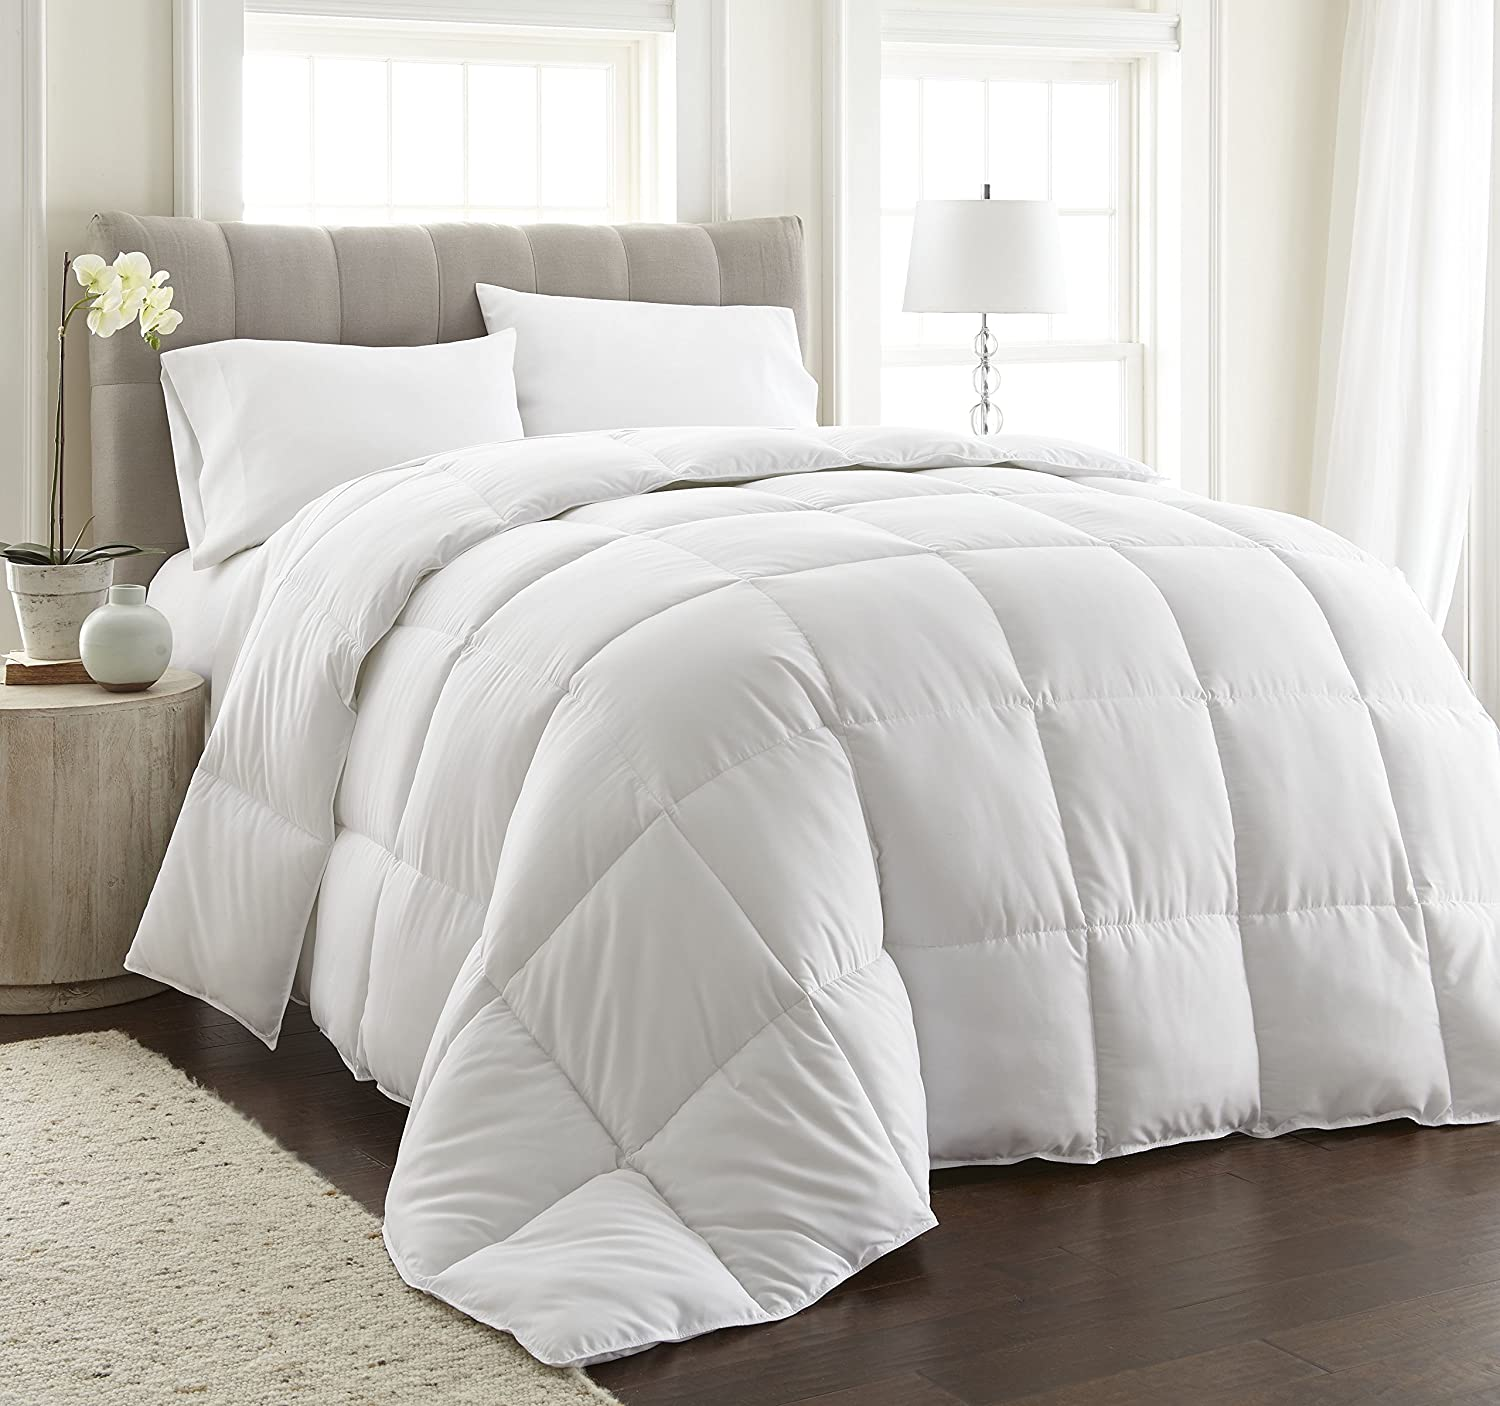 comforters silk picks top best comforter buying guide